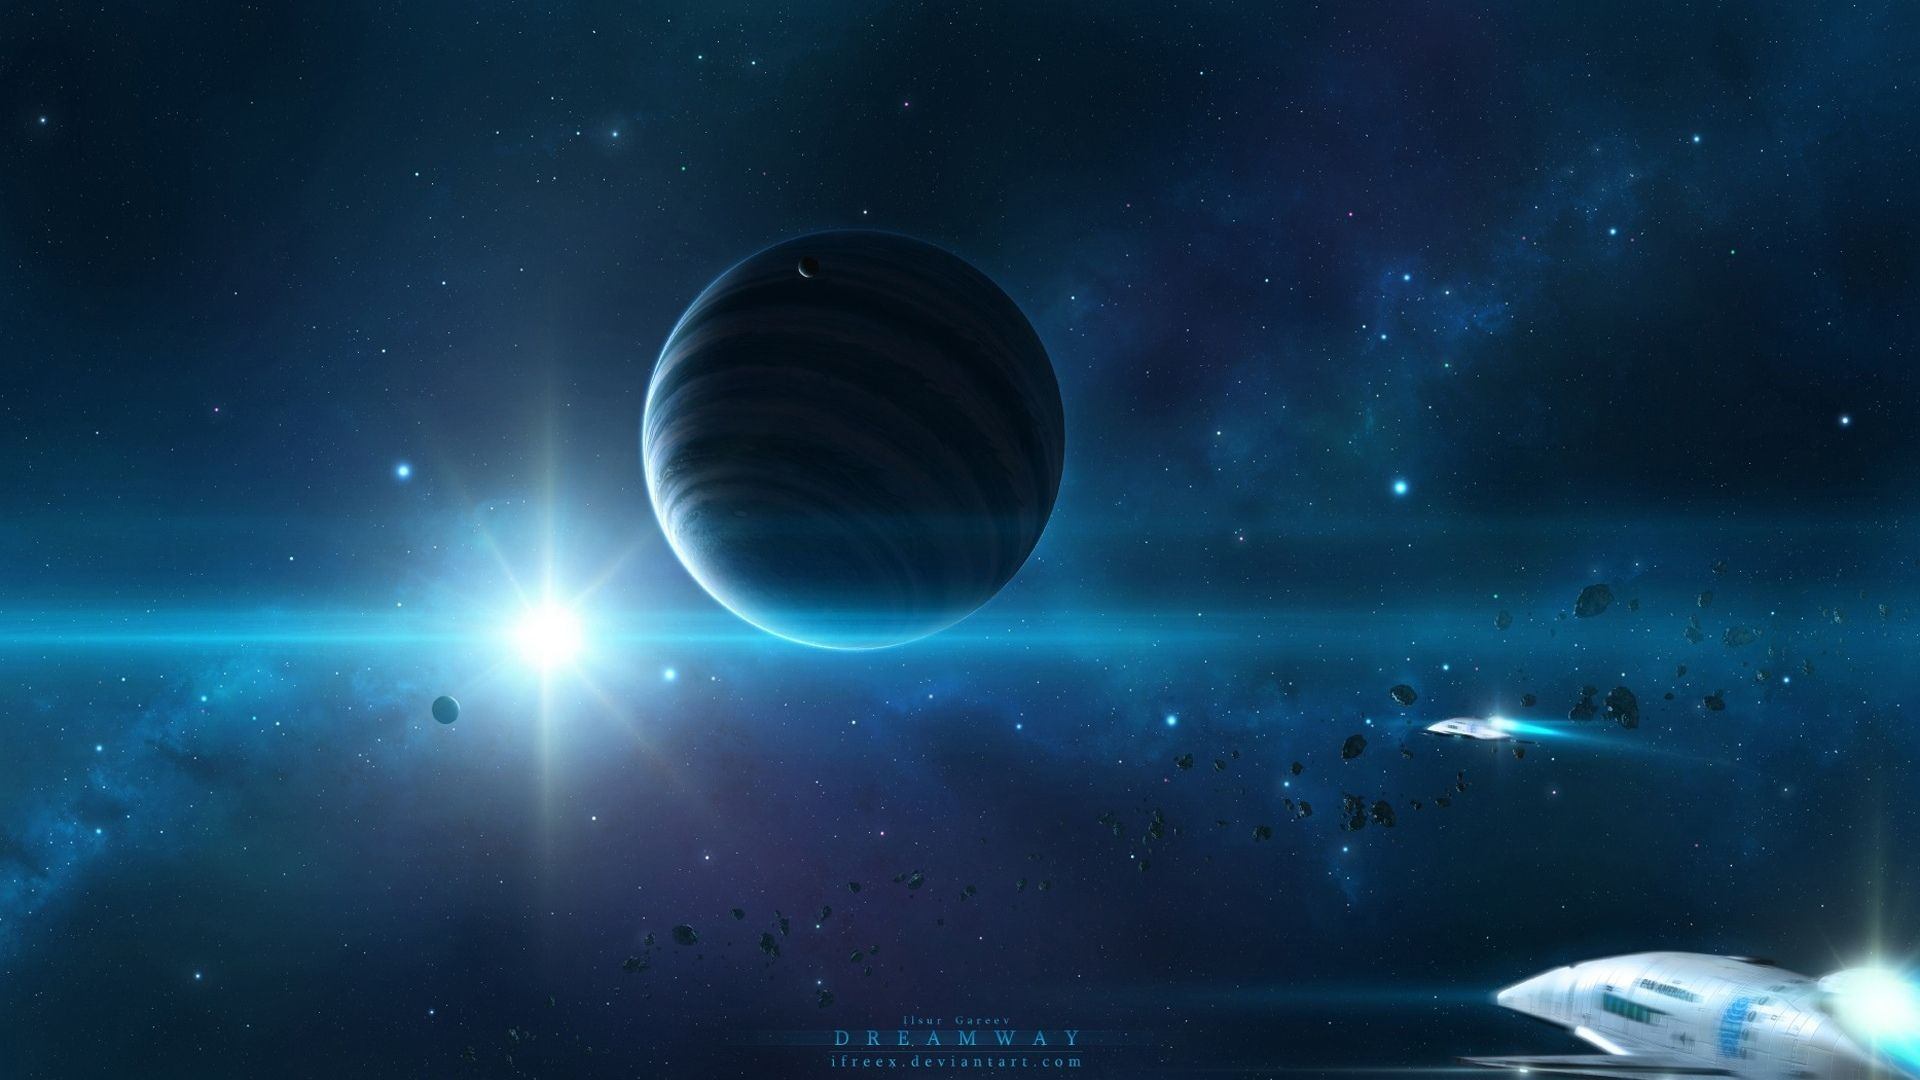 Outer Space wallpaper photo full hd